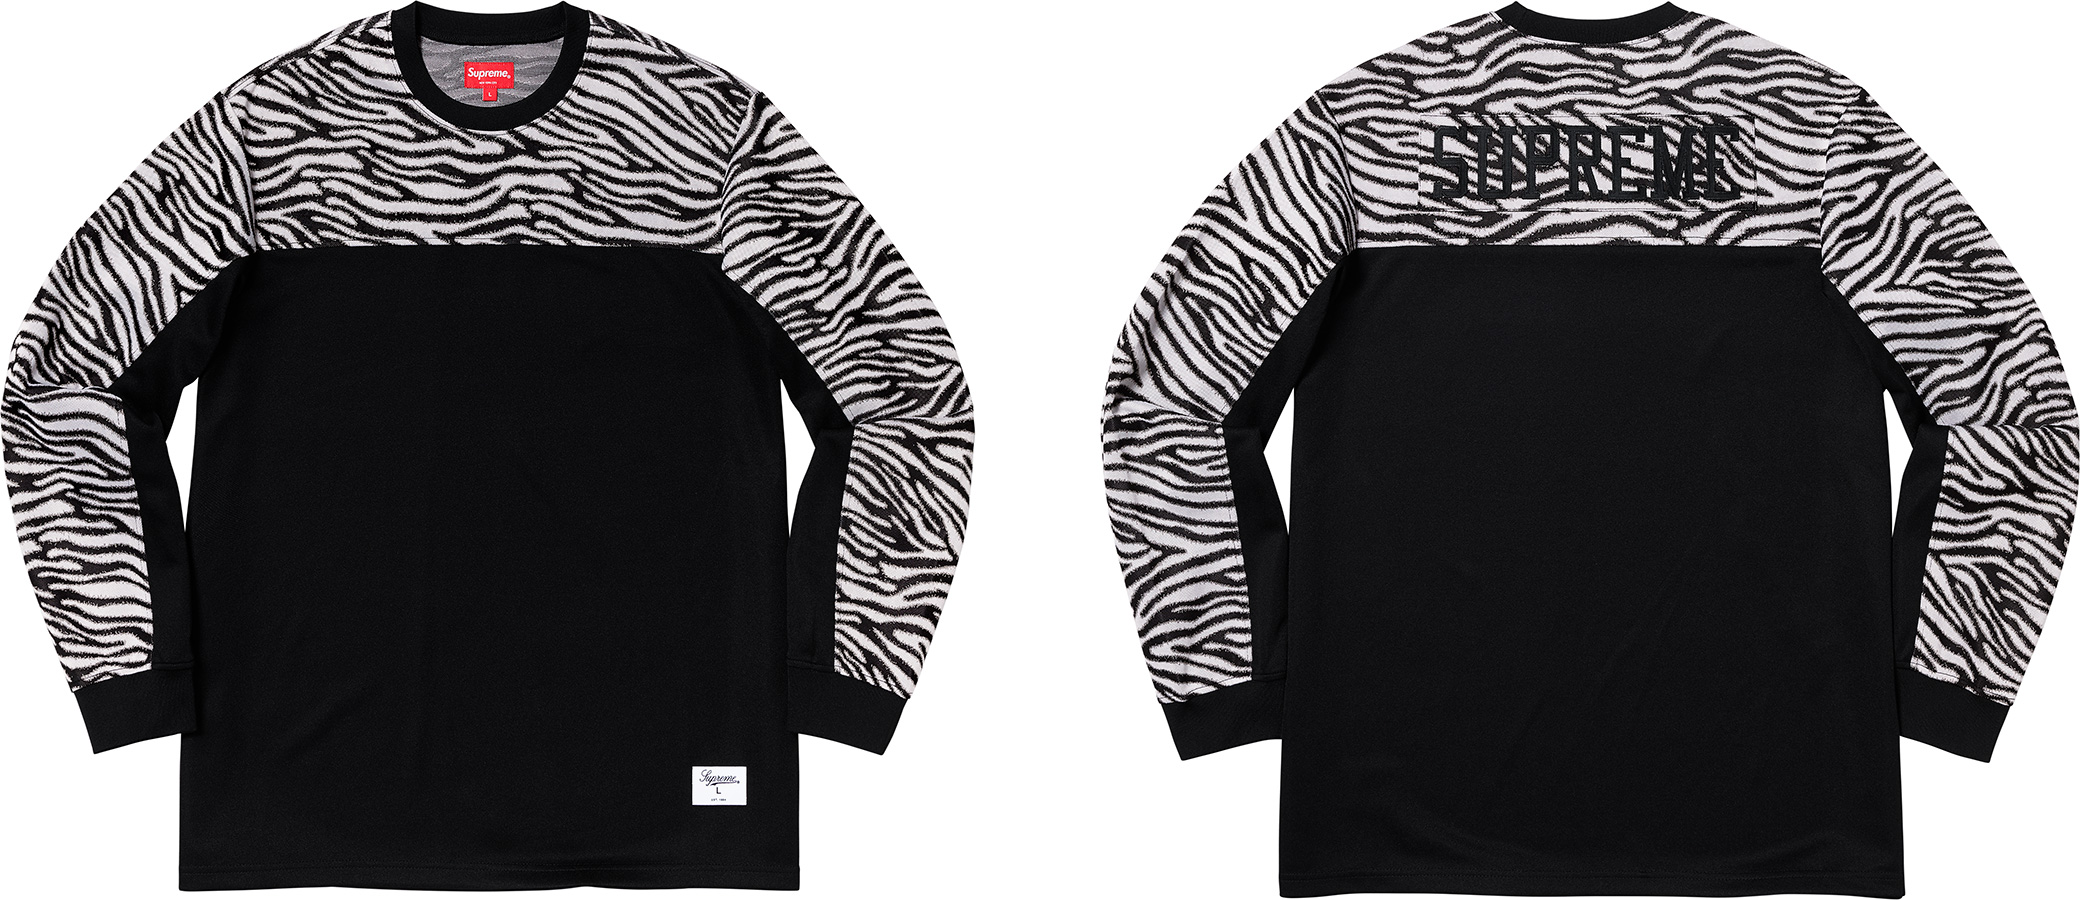 supreme-19aw-19fw-fall-winter-zebra-l-s-top